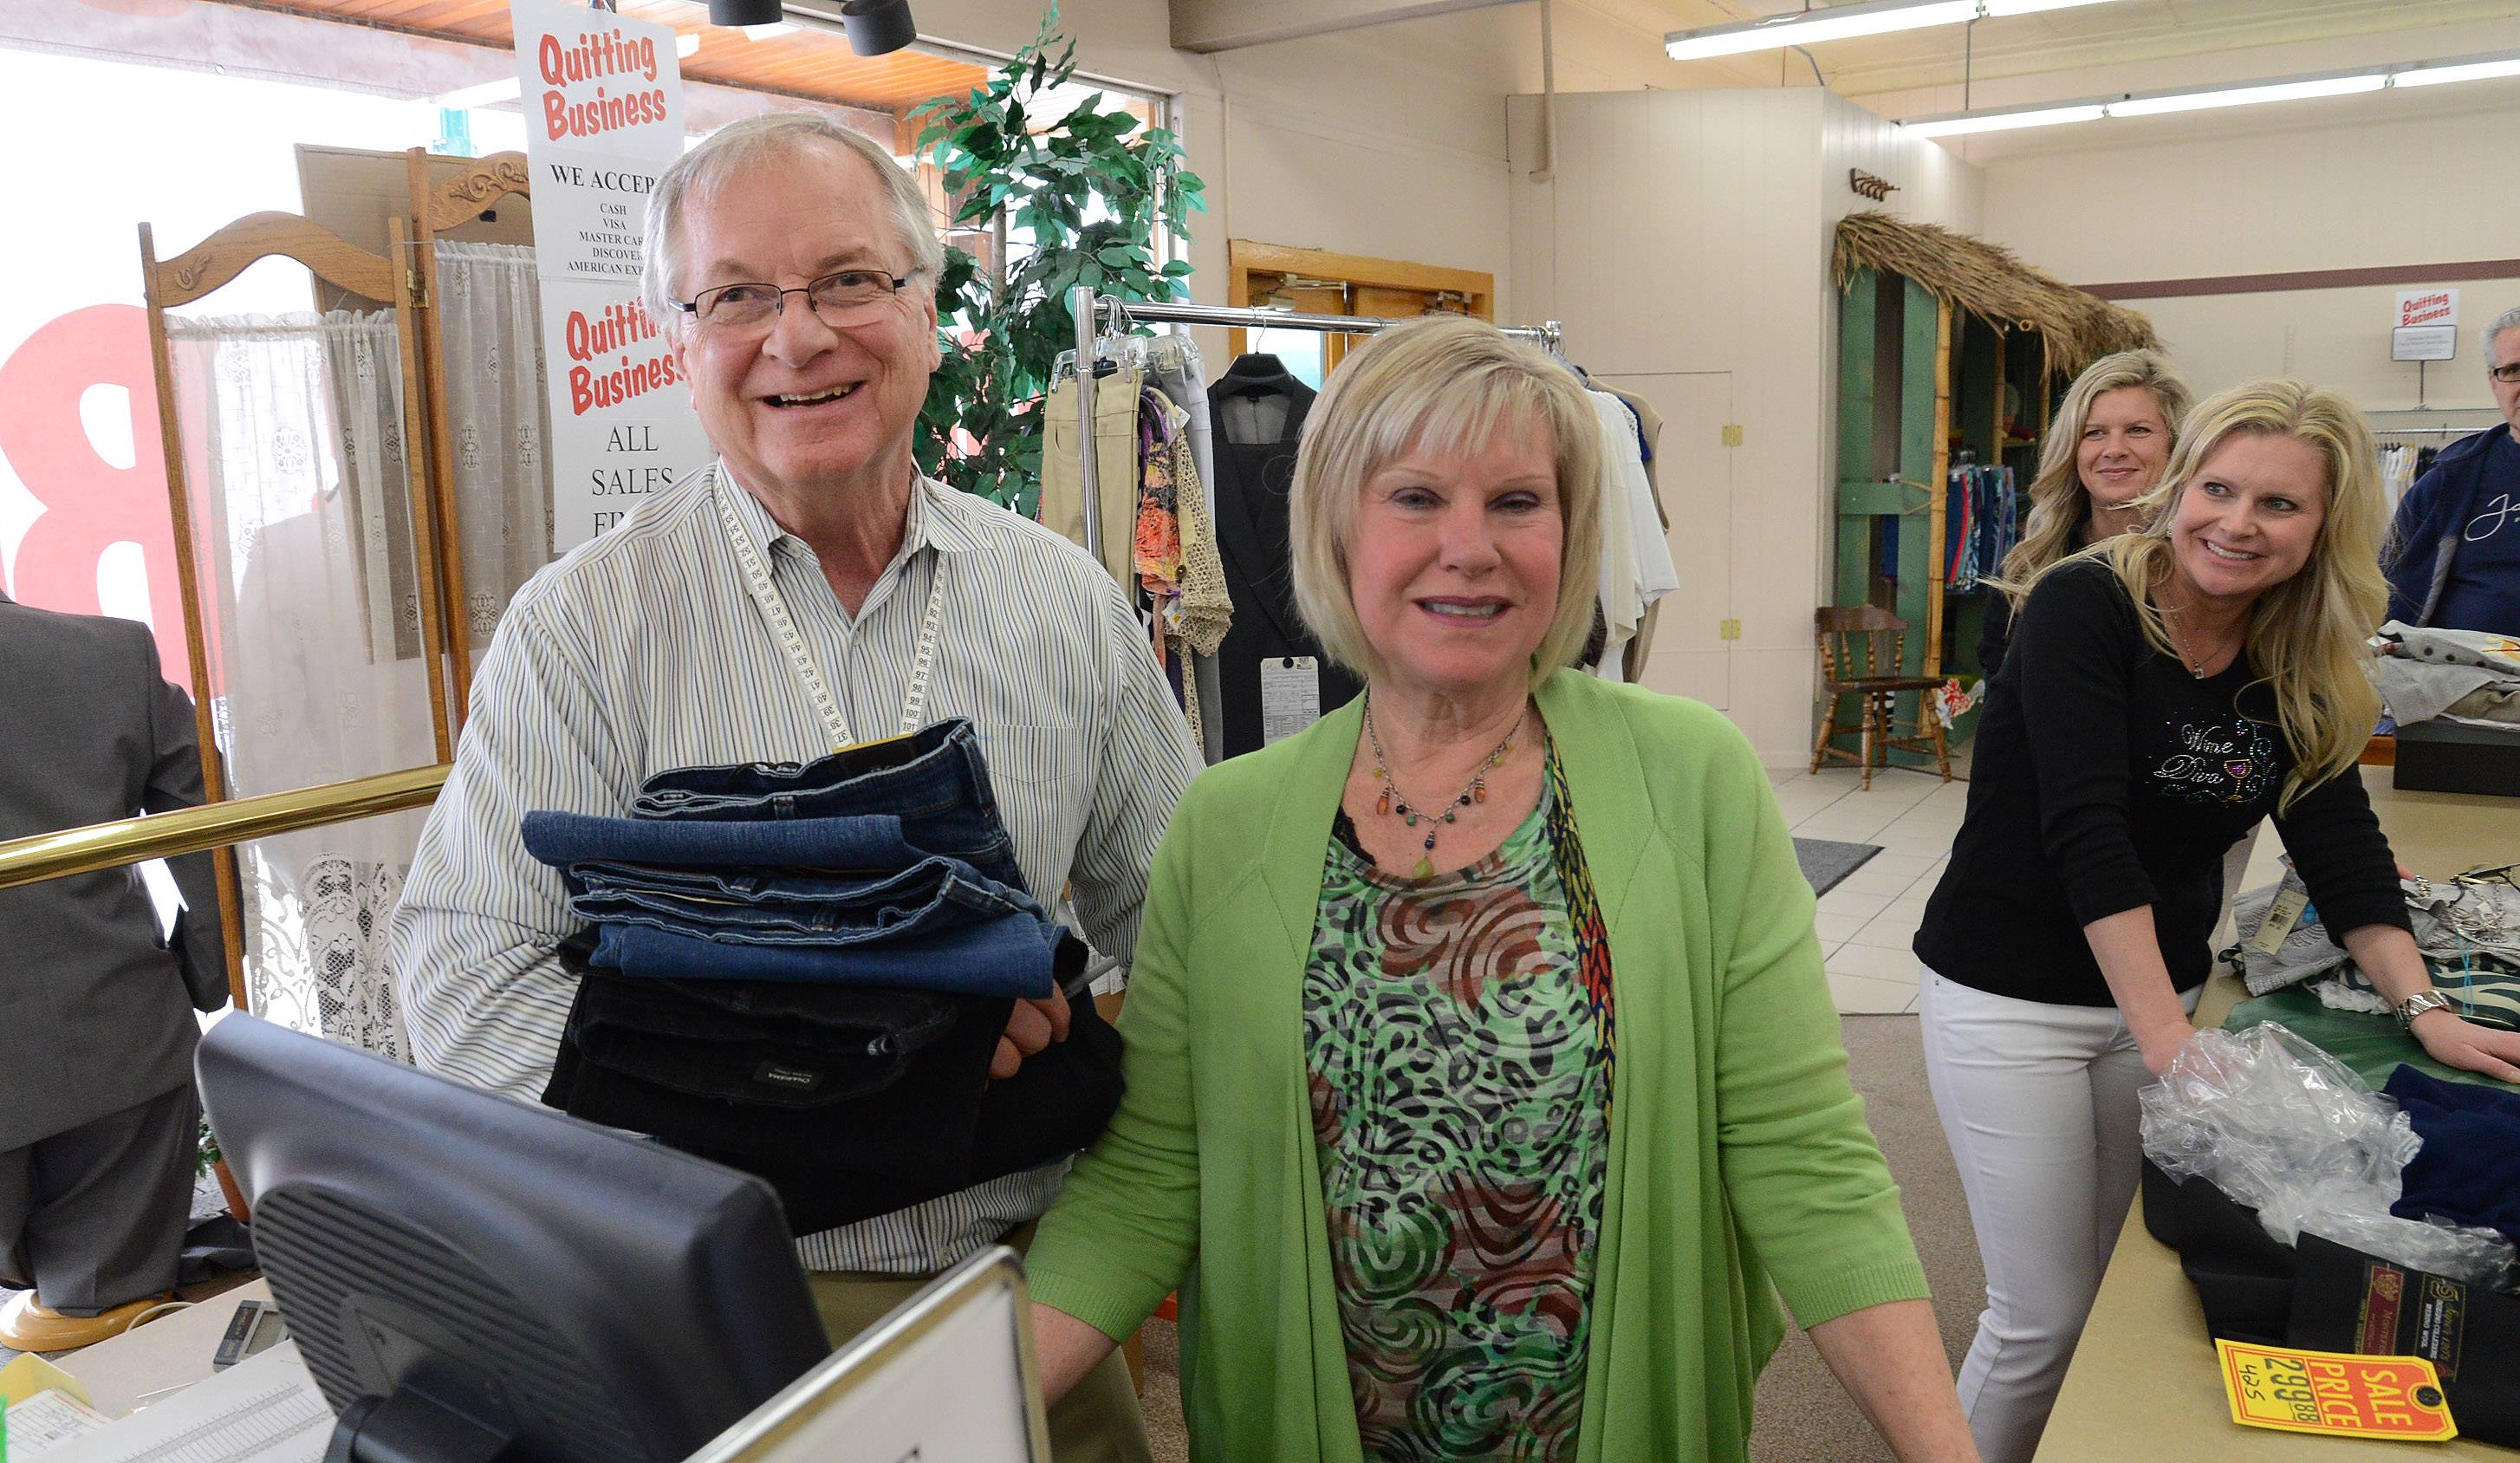 Four Squires clothing store owners, Lance and Sue Hansen, are retiring and closing the store that has operated in downtown Antioch since 1972. Their daughters, Heather Knies and Melissa Kann, are helping in the background.